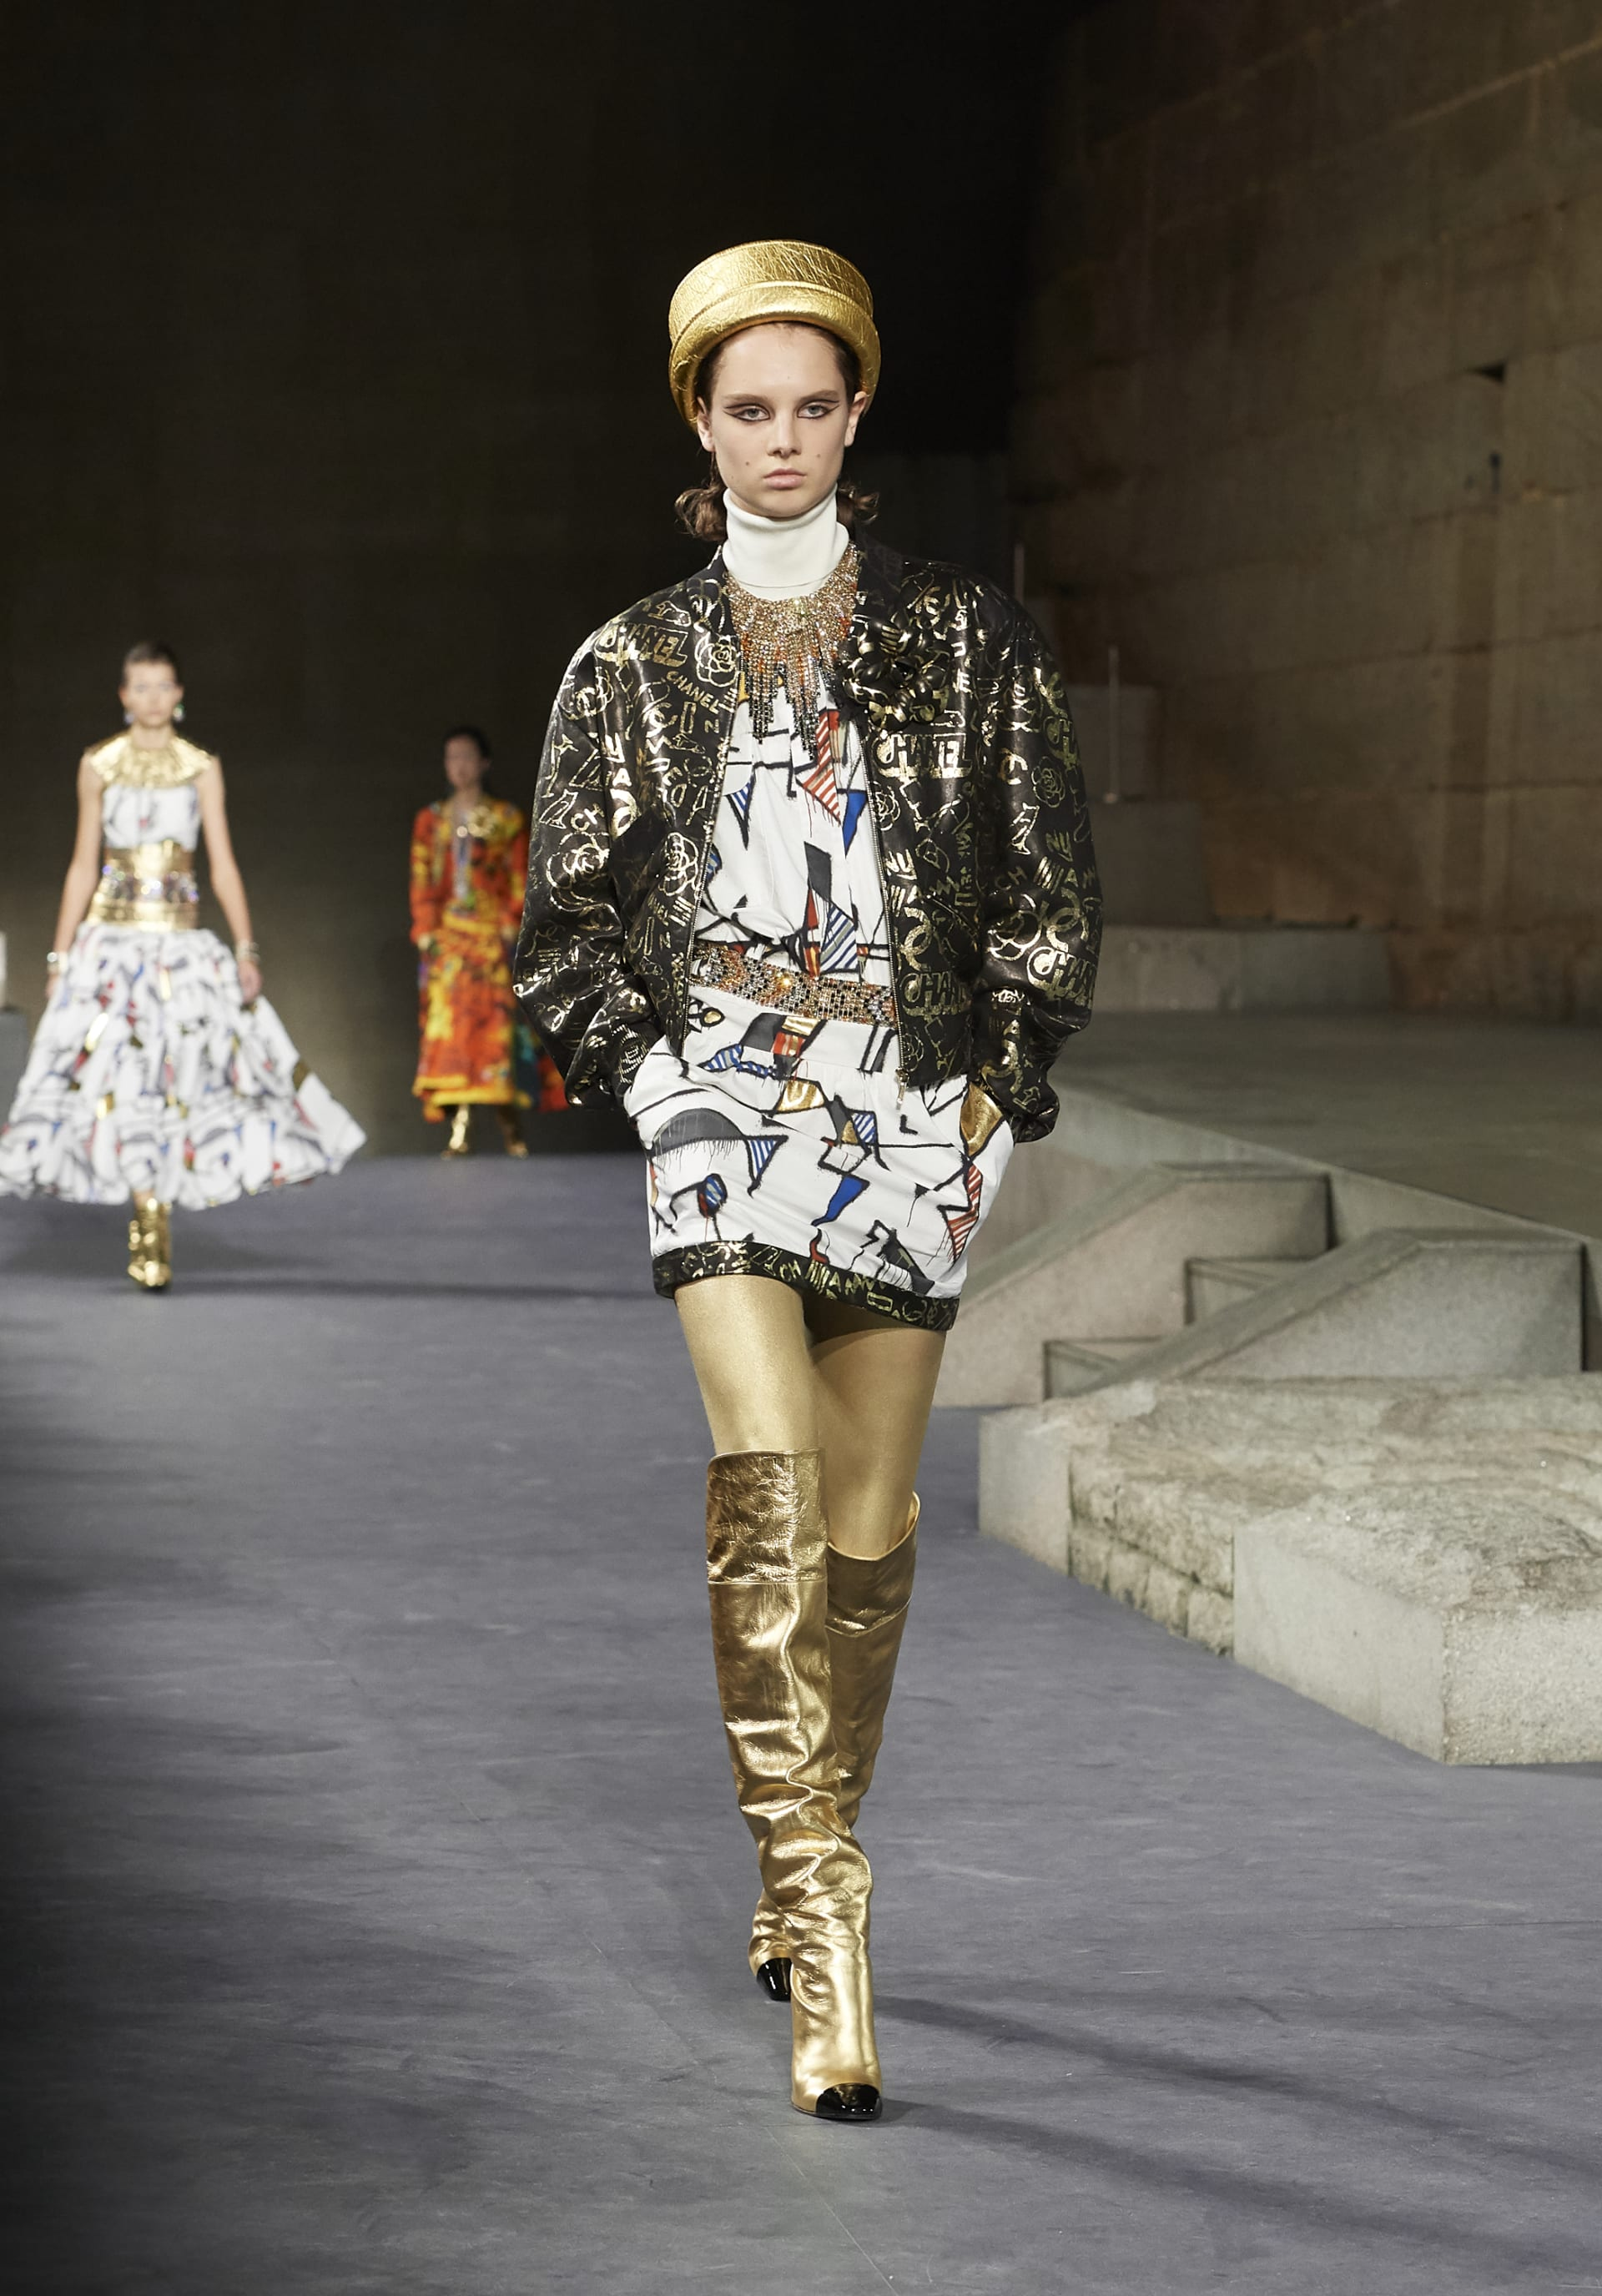 View 1 - Look 64 - Métiers d'Art Paris-New York 2018/19